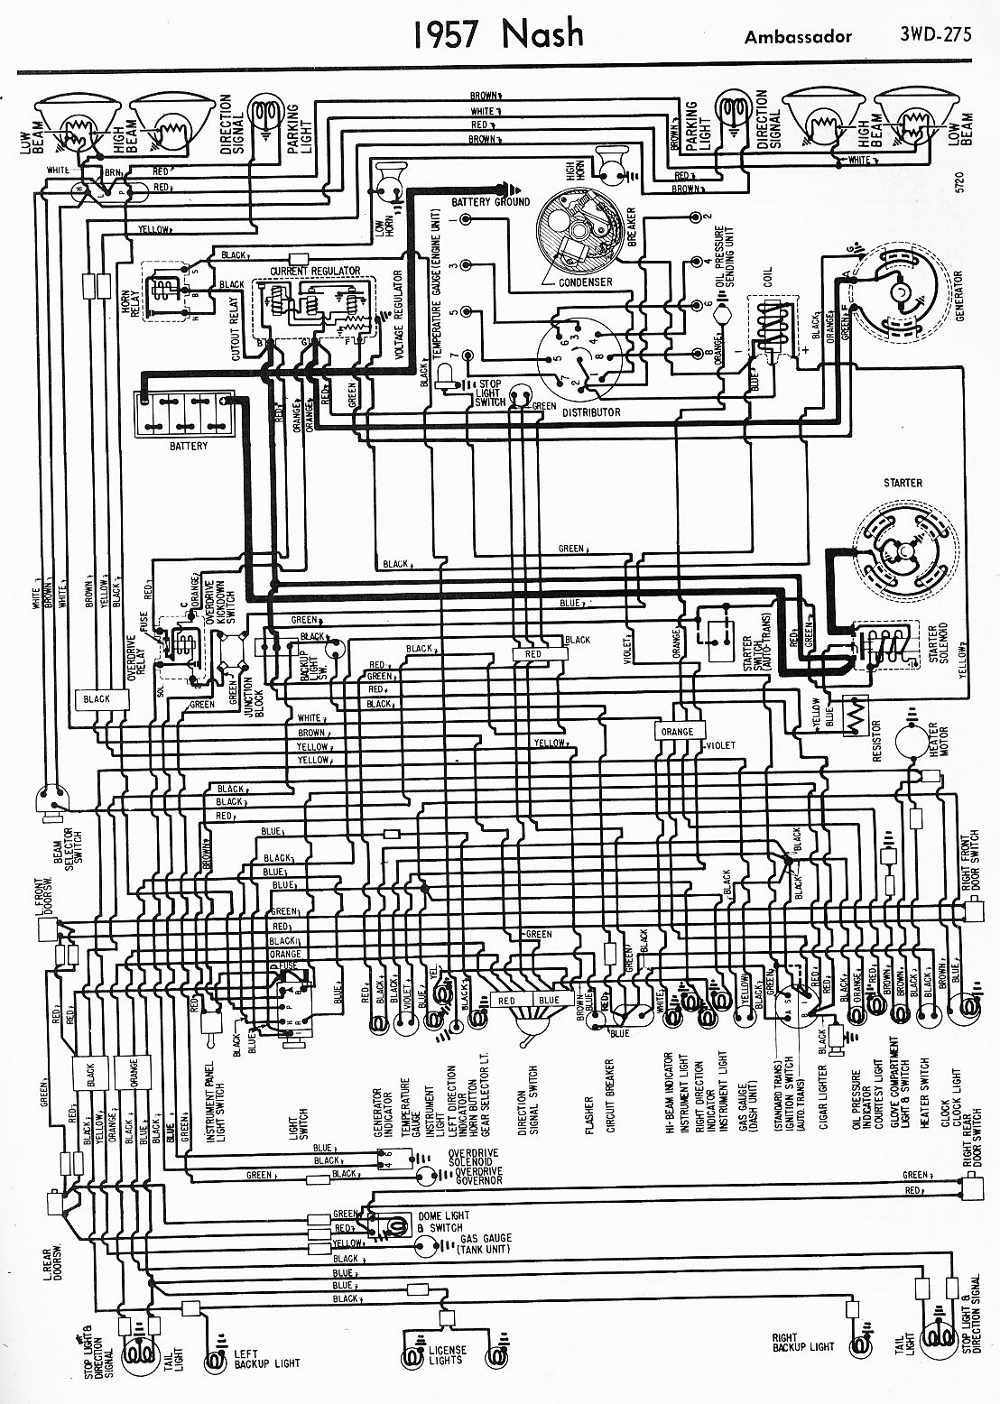 wiring diagram for 1950 nash wiring diagram name nash trailer wiring diagram [ 1000 x 1404 Pixel ]